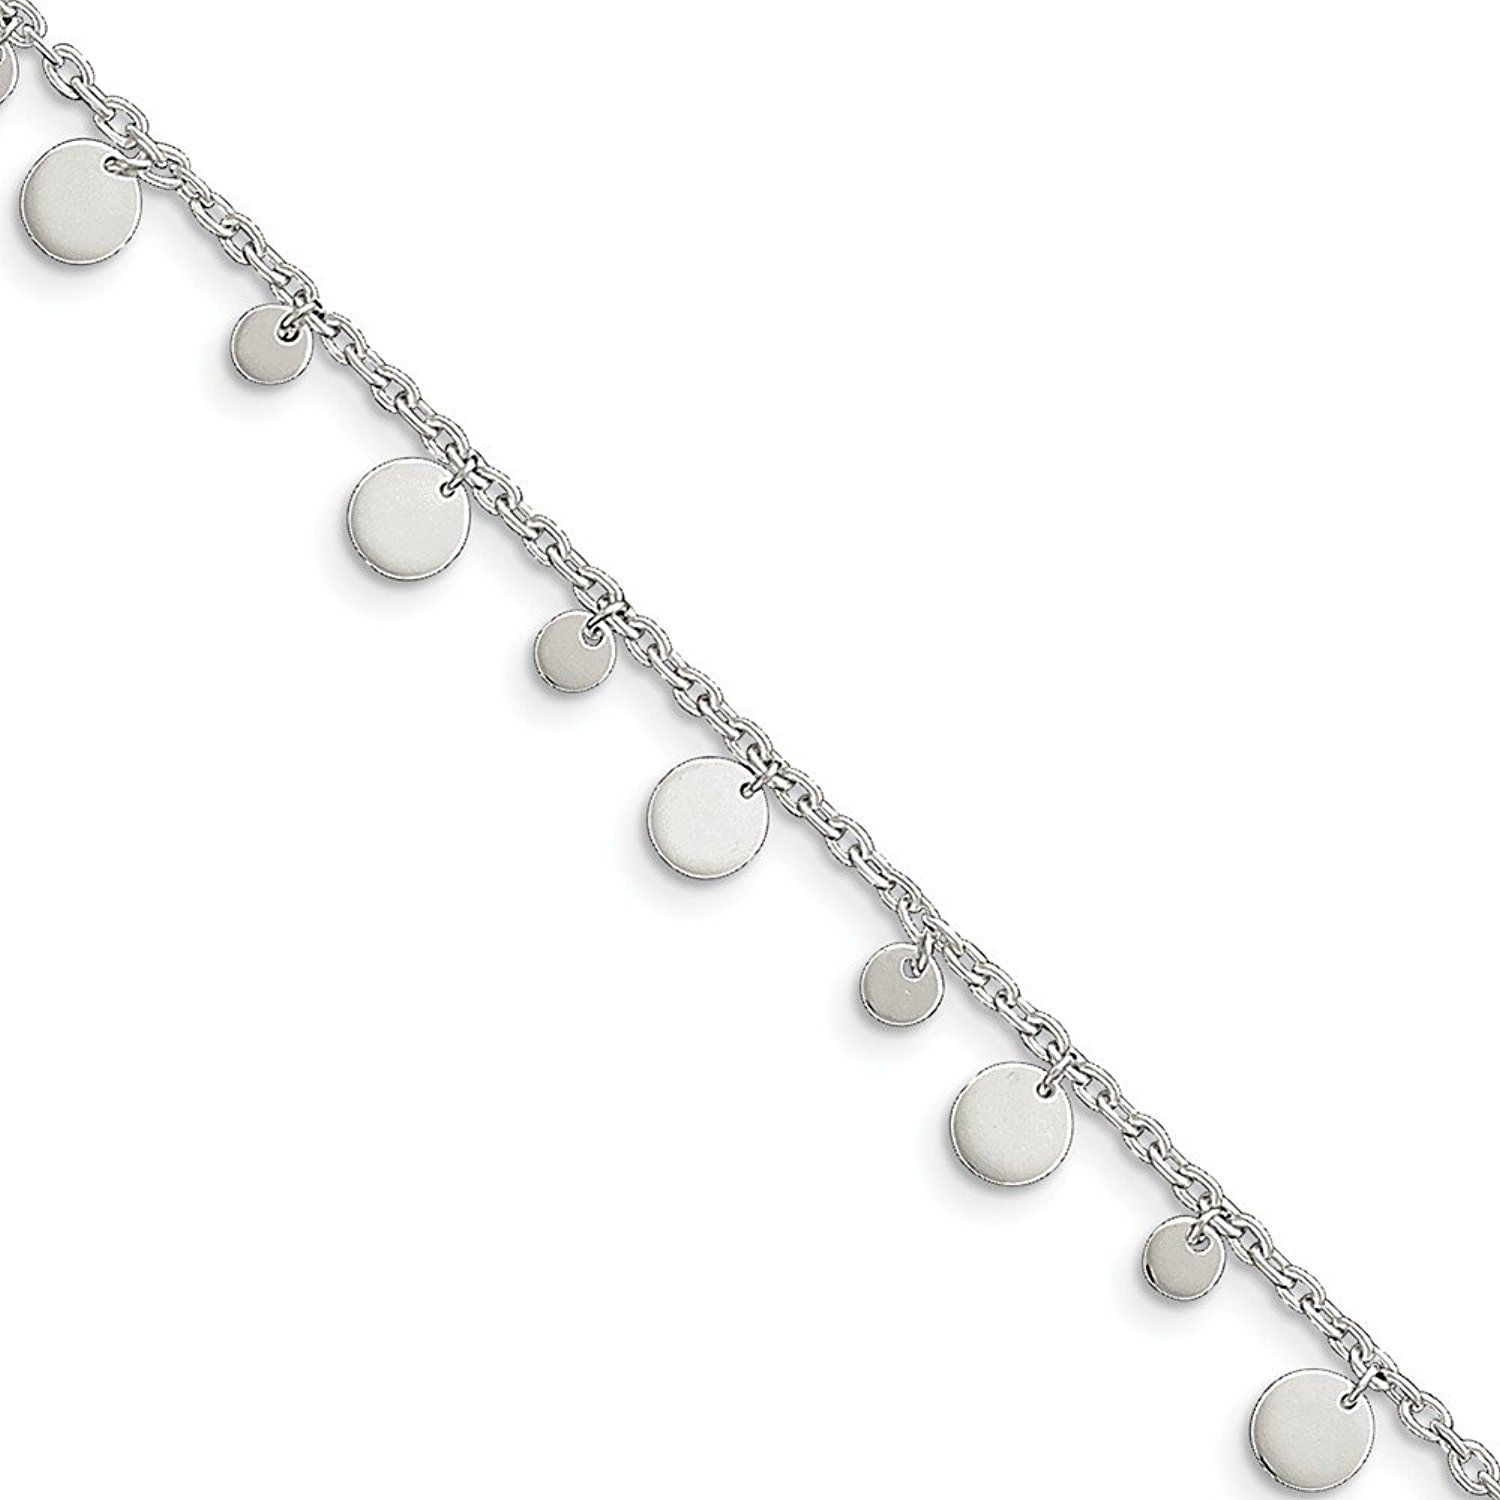 Sterling Silver Singapore Chain Anklet 10 length